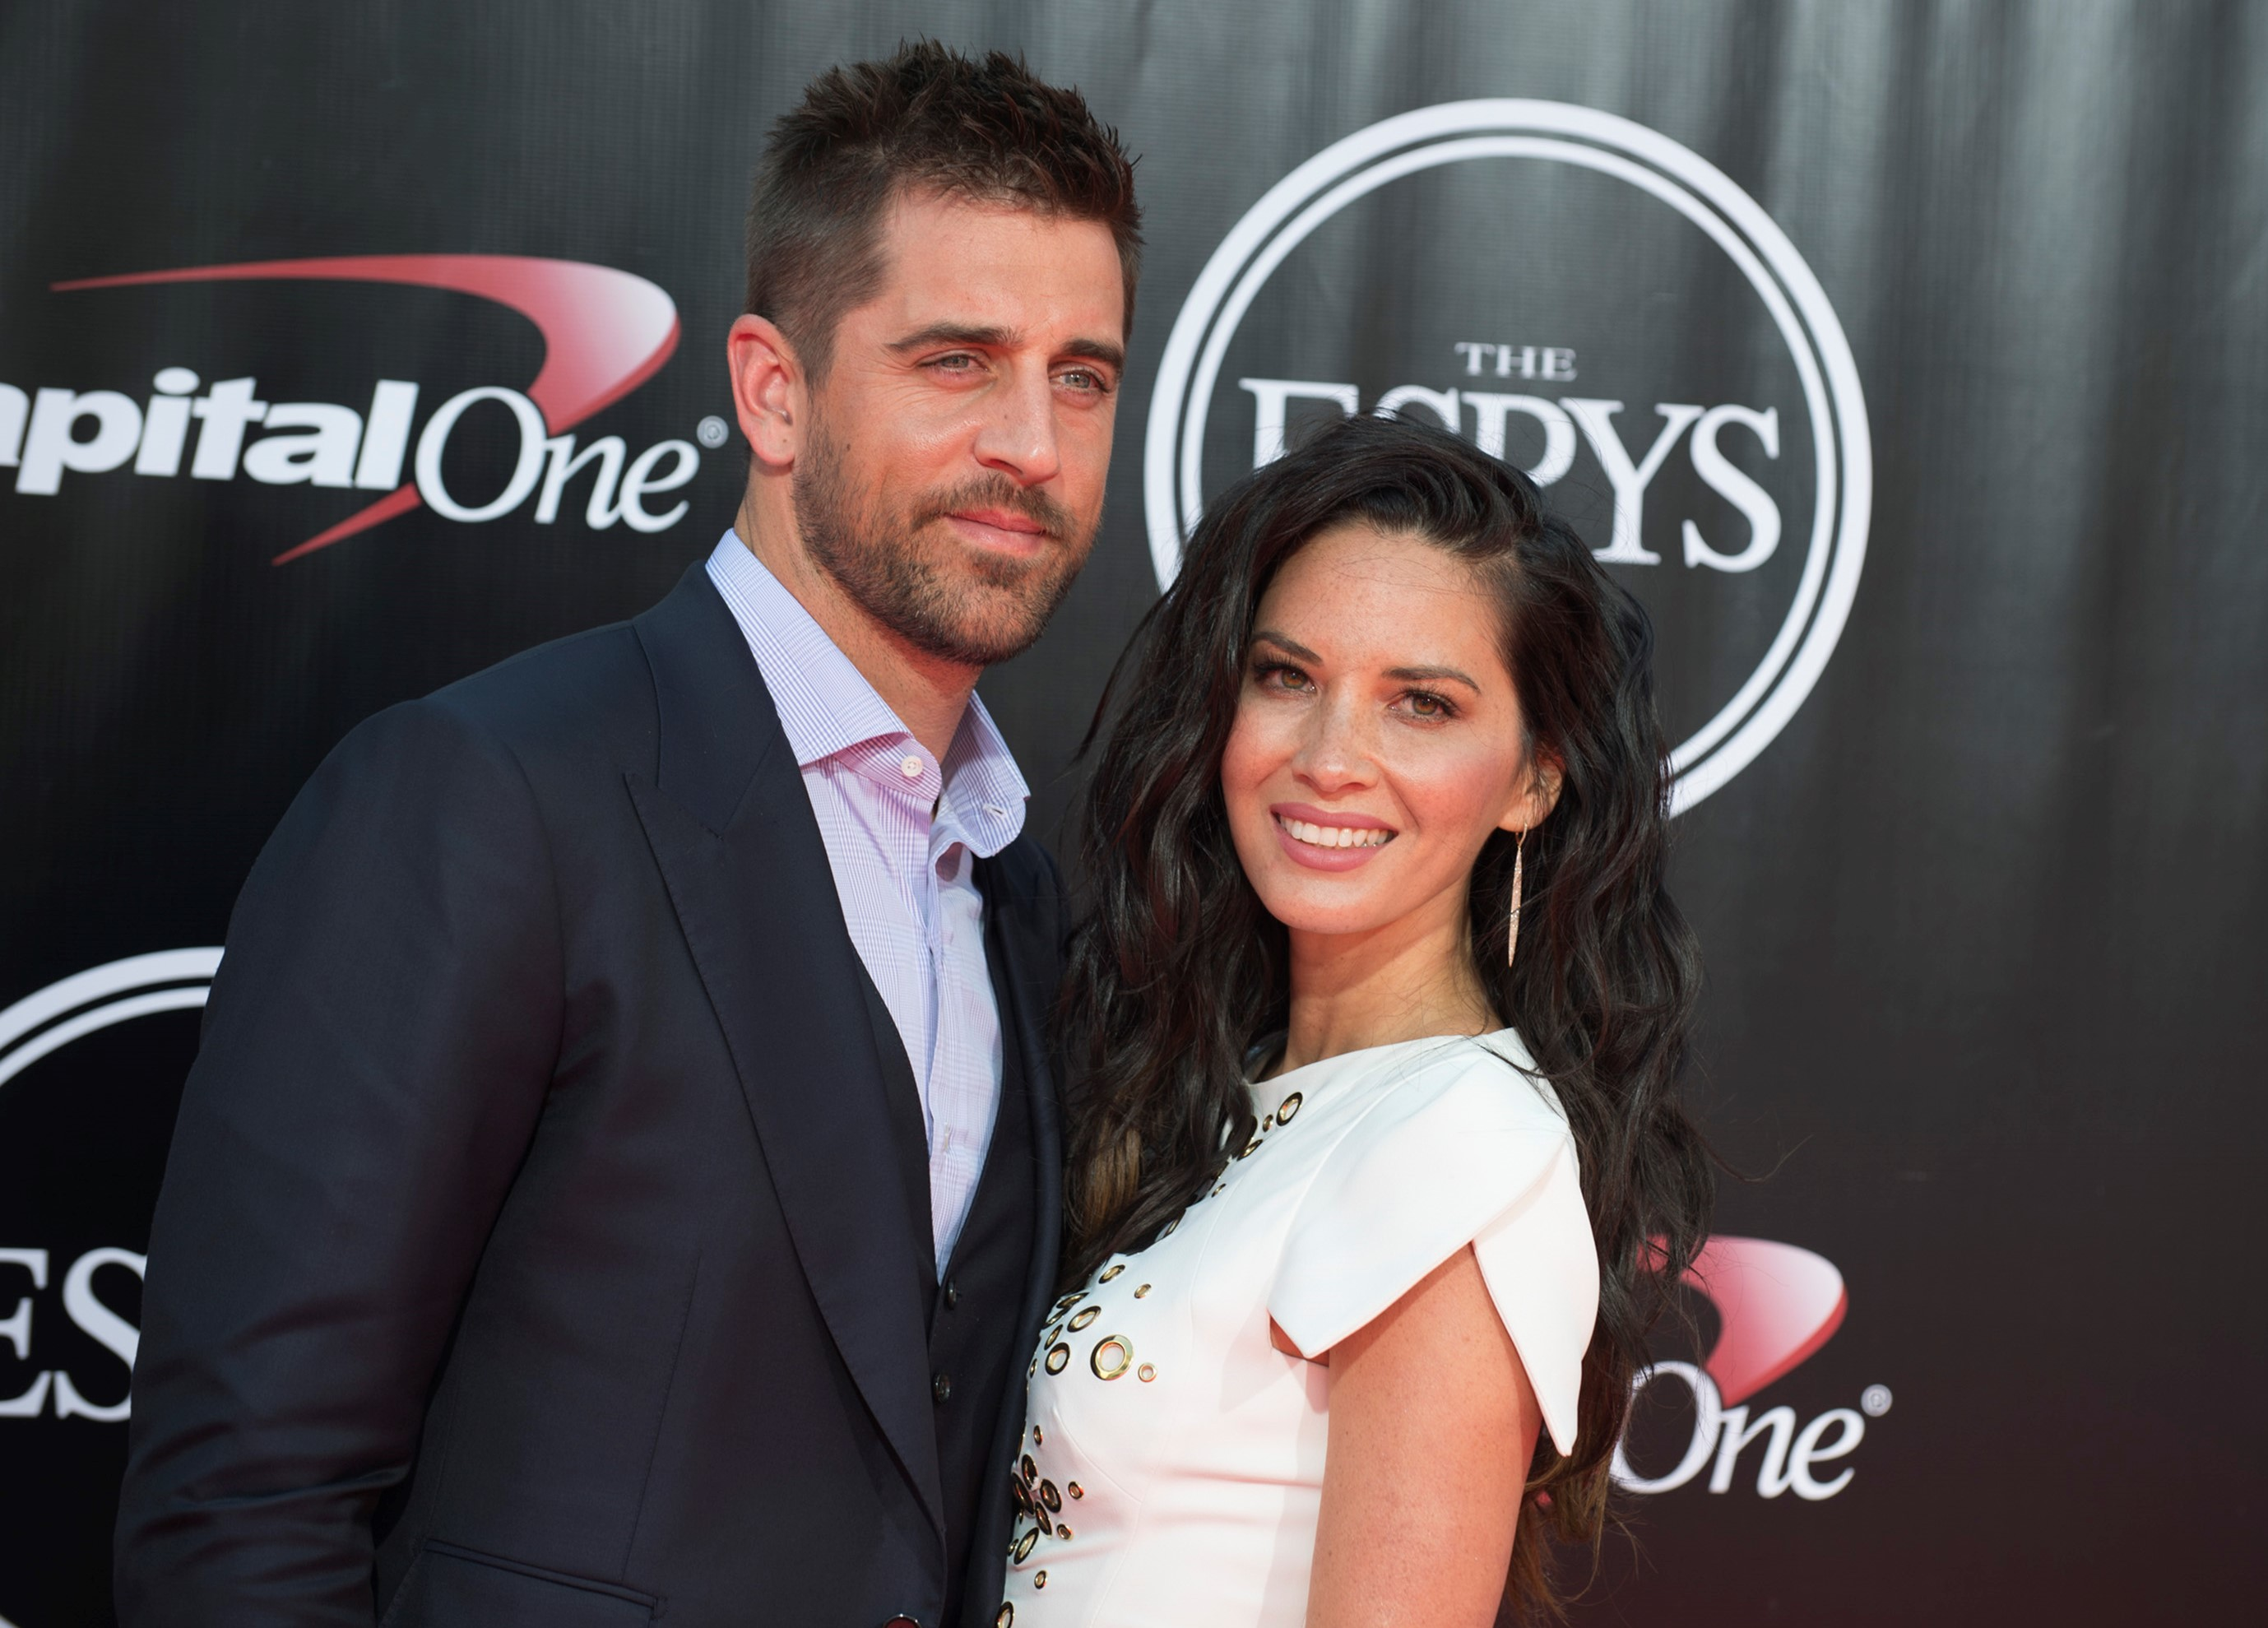 Did Olivia Munn Just Throw Shade At Ex Aaron Rodgers With Personal Relationship Details